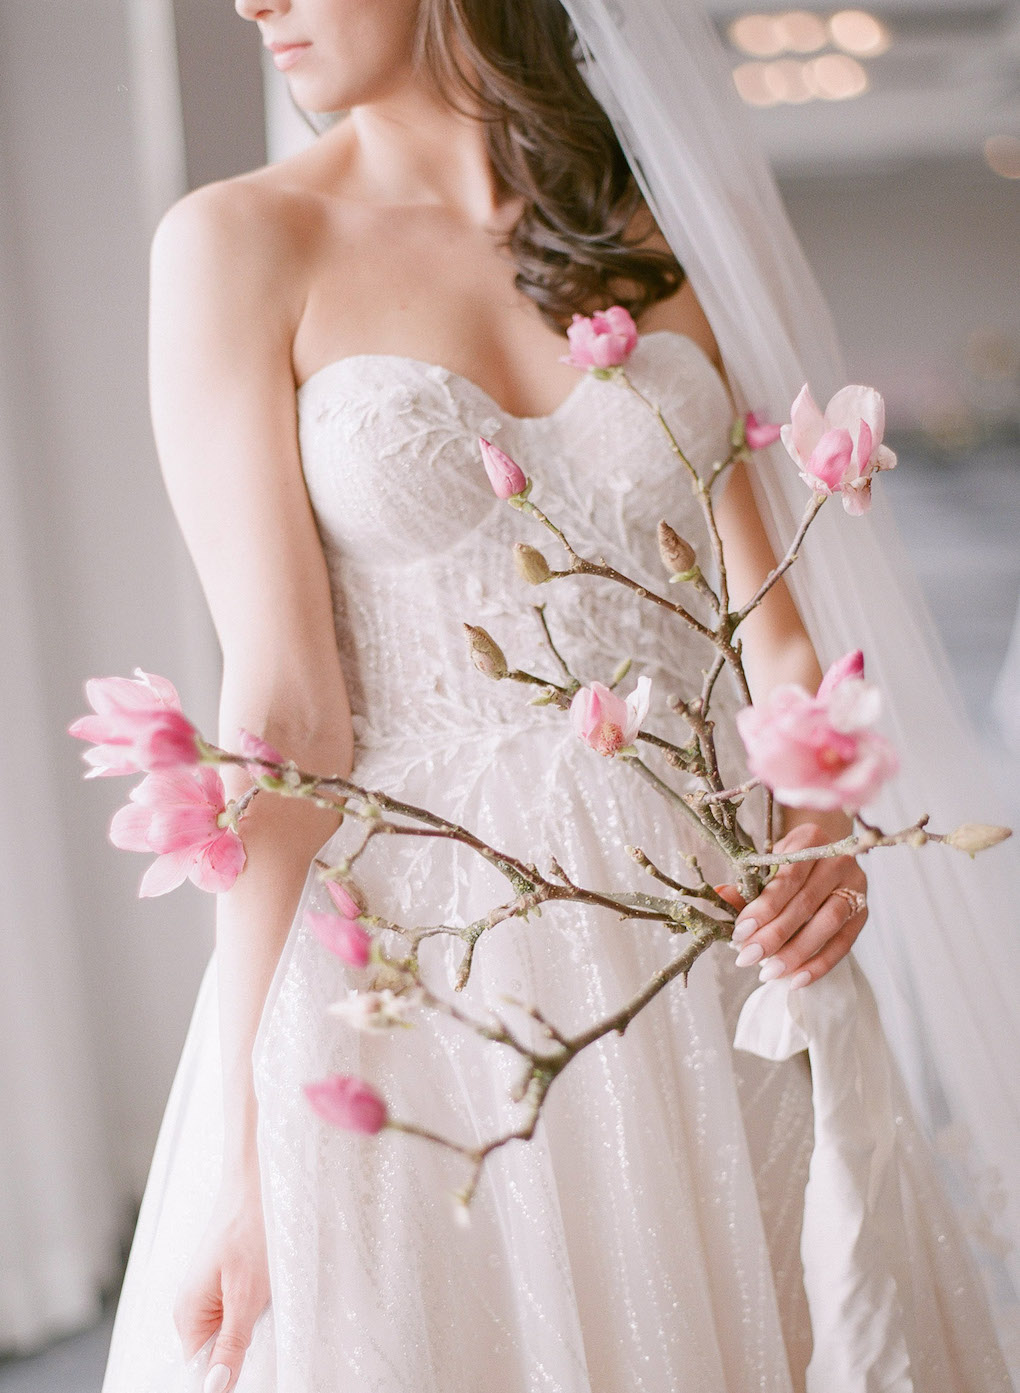 Simple Wedding Bouquet:  Soft and Subtle Palettes of Spring Blossoms | Editorial Shoot at The Renaissance Pittsburgh by Exhale Events. See more inspiration at exhale-events.com!